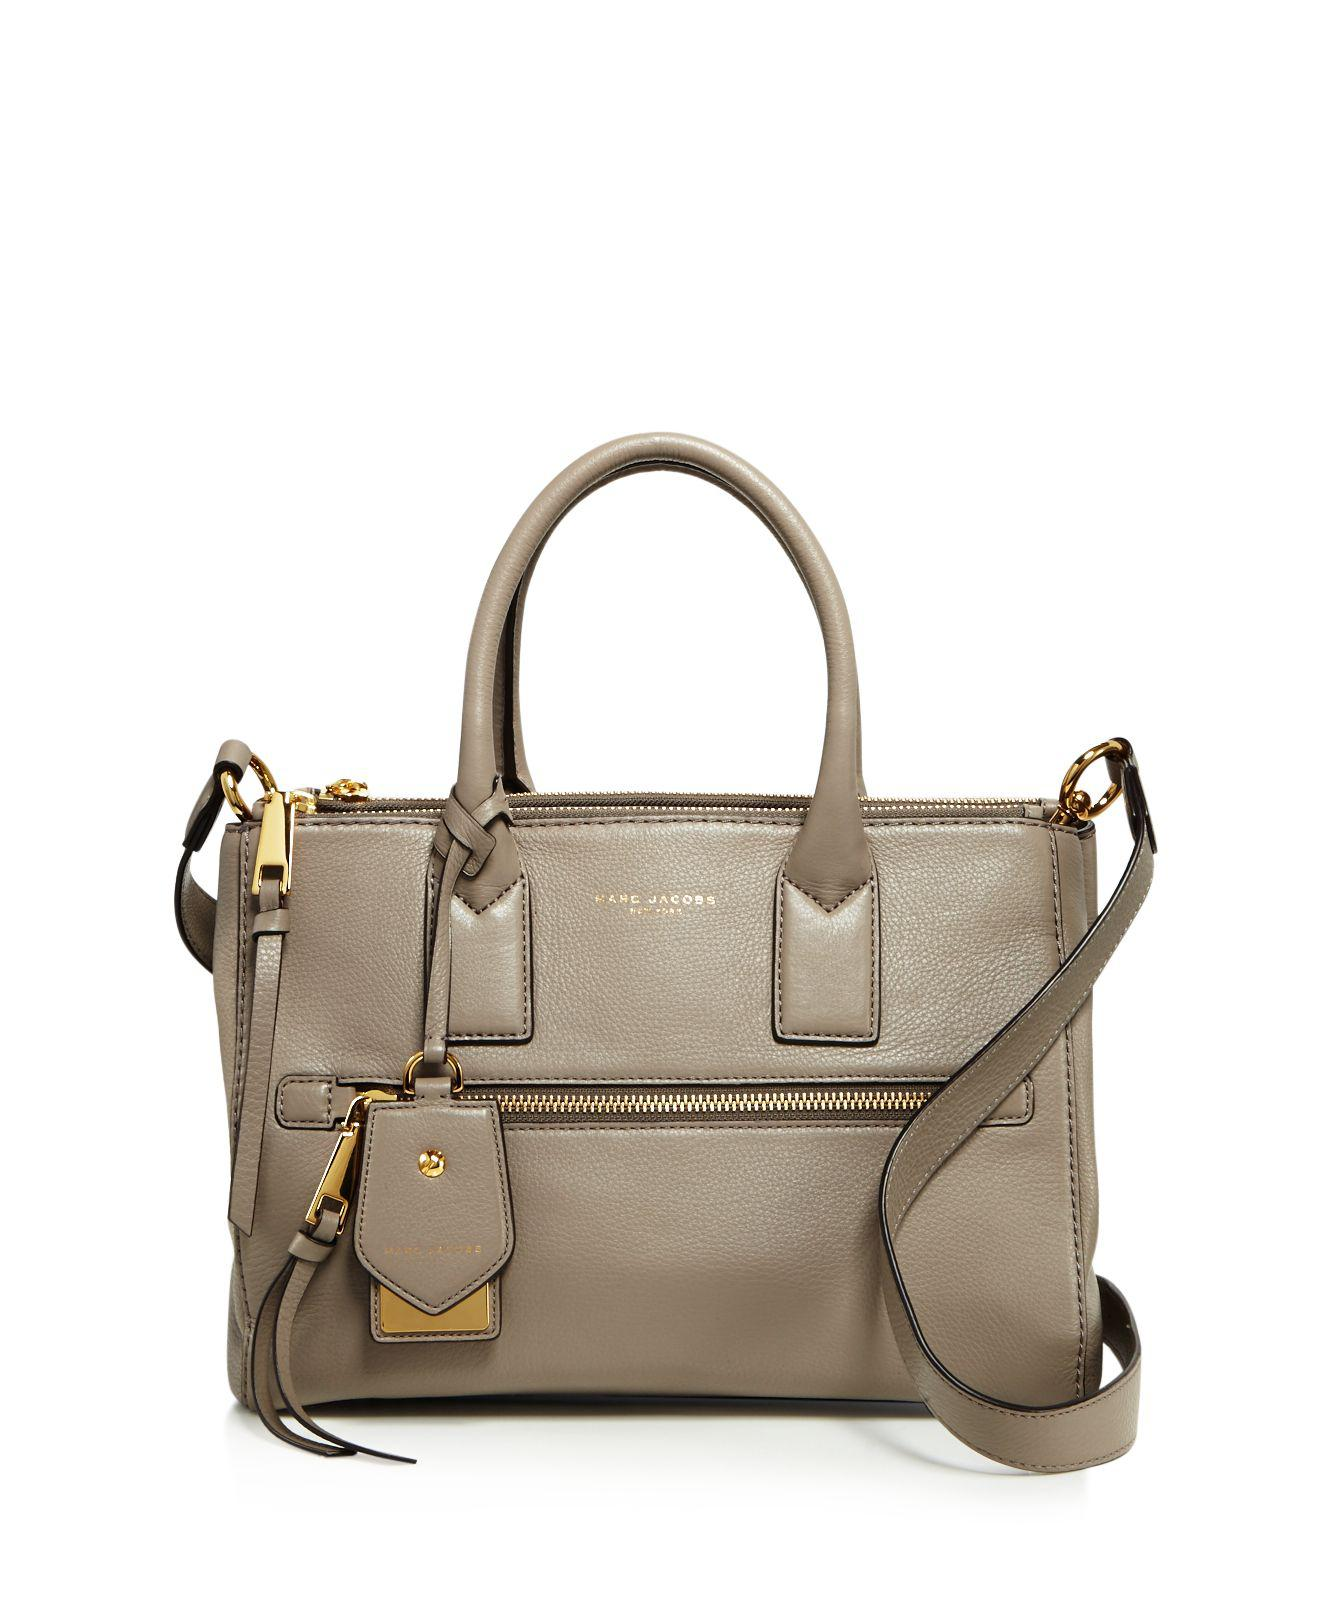 c44e37e6d43e Marc Jacobs Recruit East west Leather Tote in White - Lyst